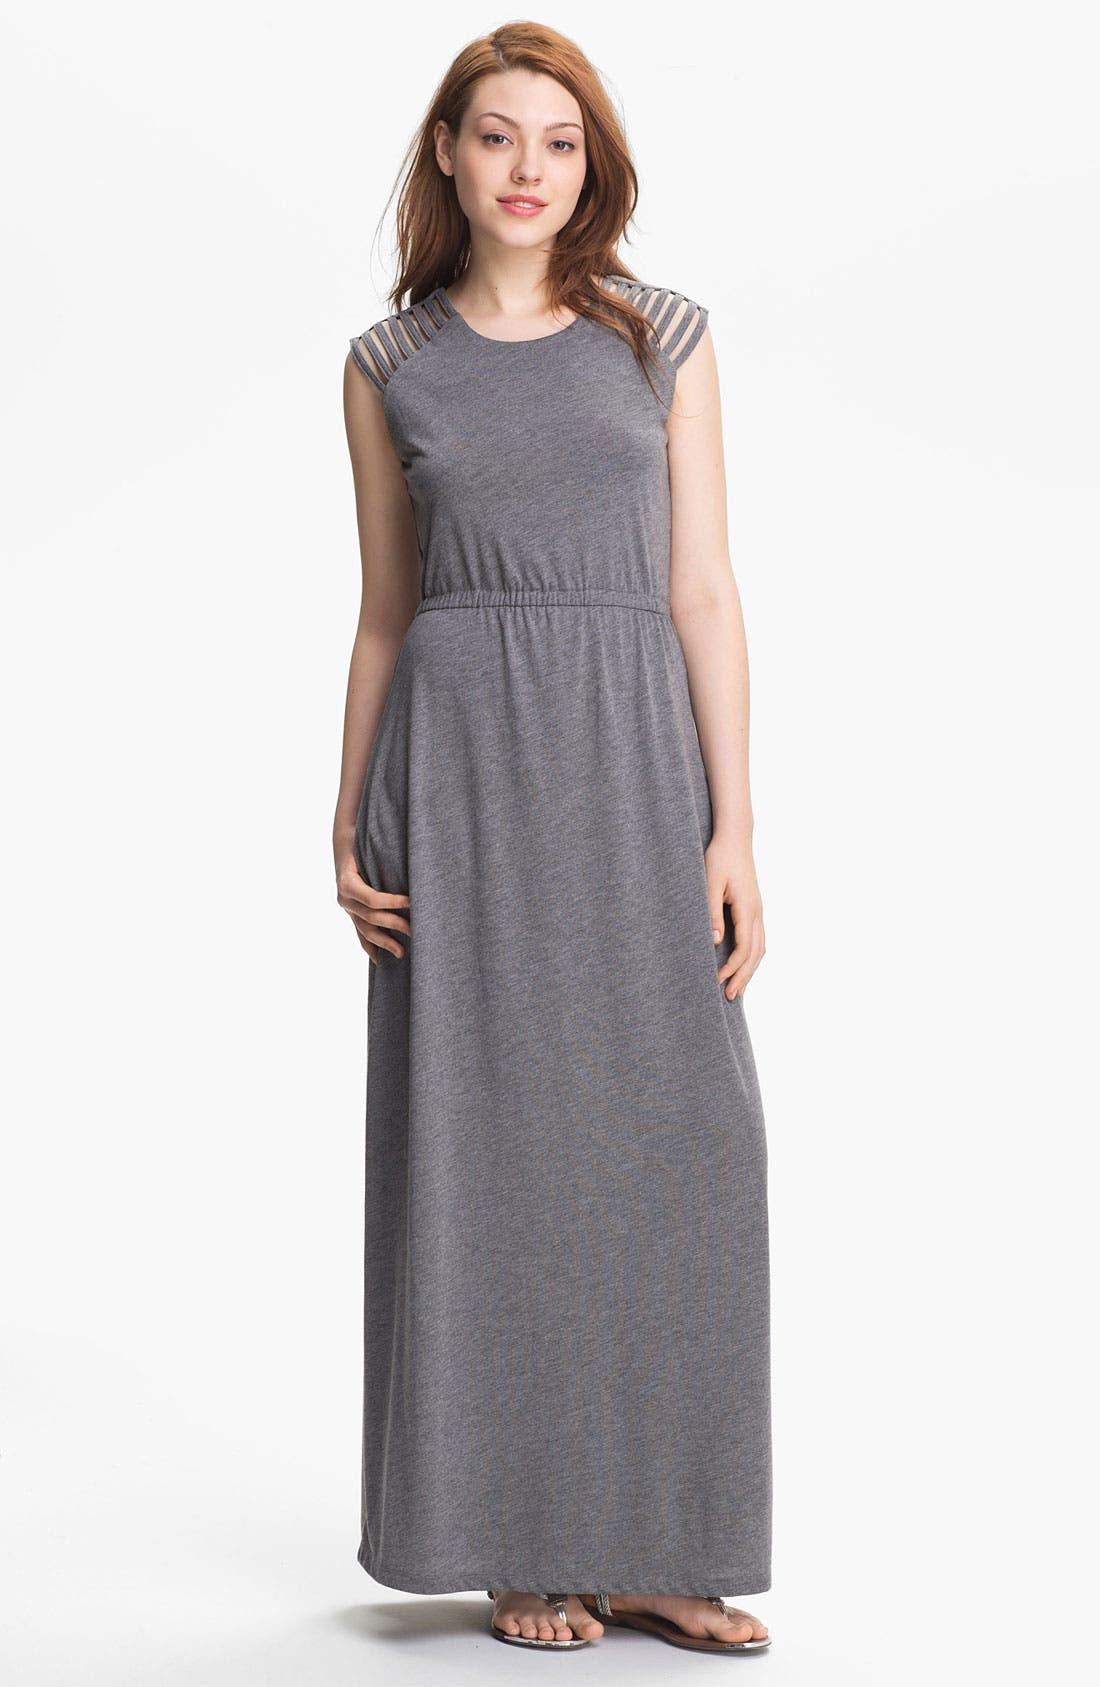 Alternate Image 1 Selected - Press Cutout Shoulder Maxi Dress (Online Exclusive)